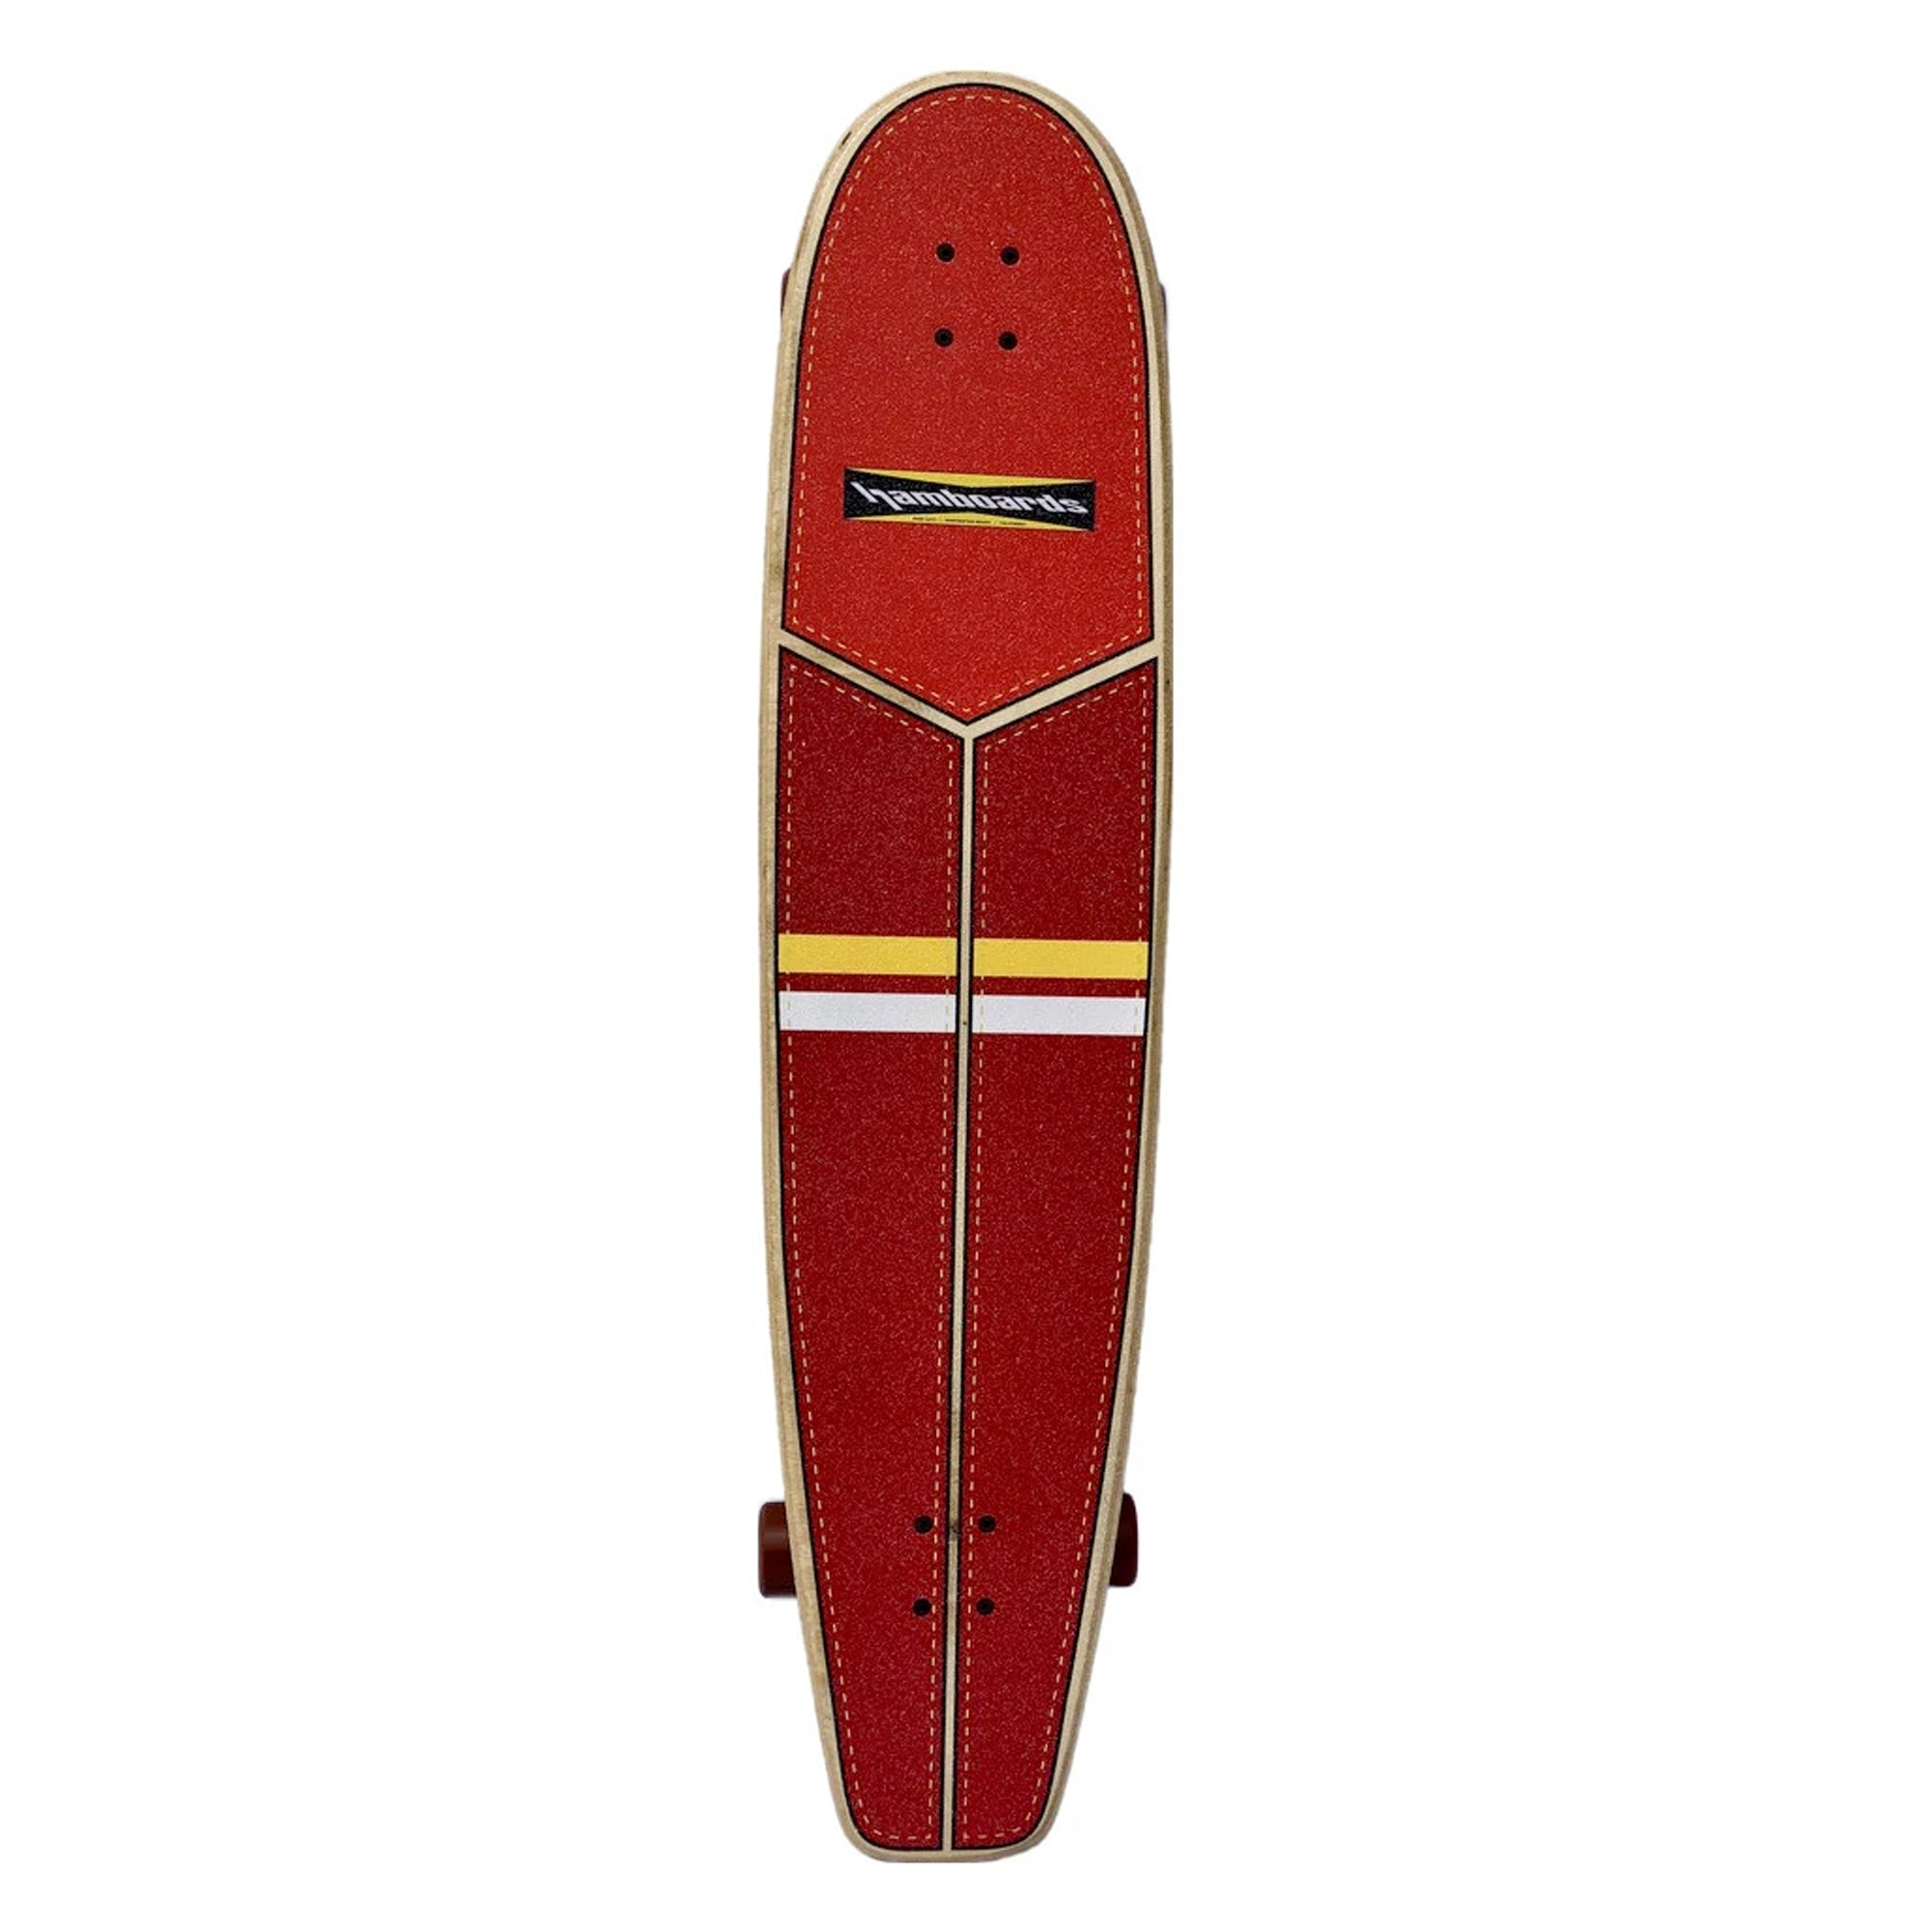 "Hamboard Huntington Hop 45"" Surfskate Skateboard - Red Orange Yellow White"